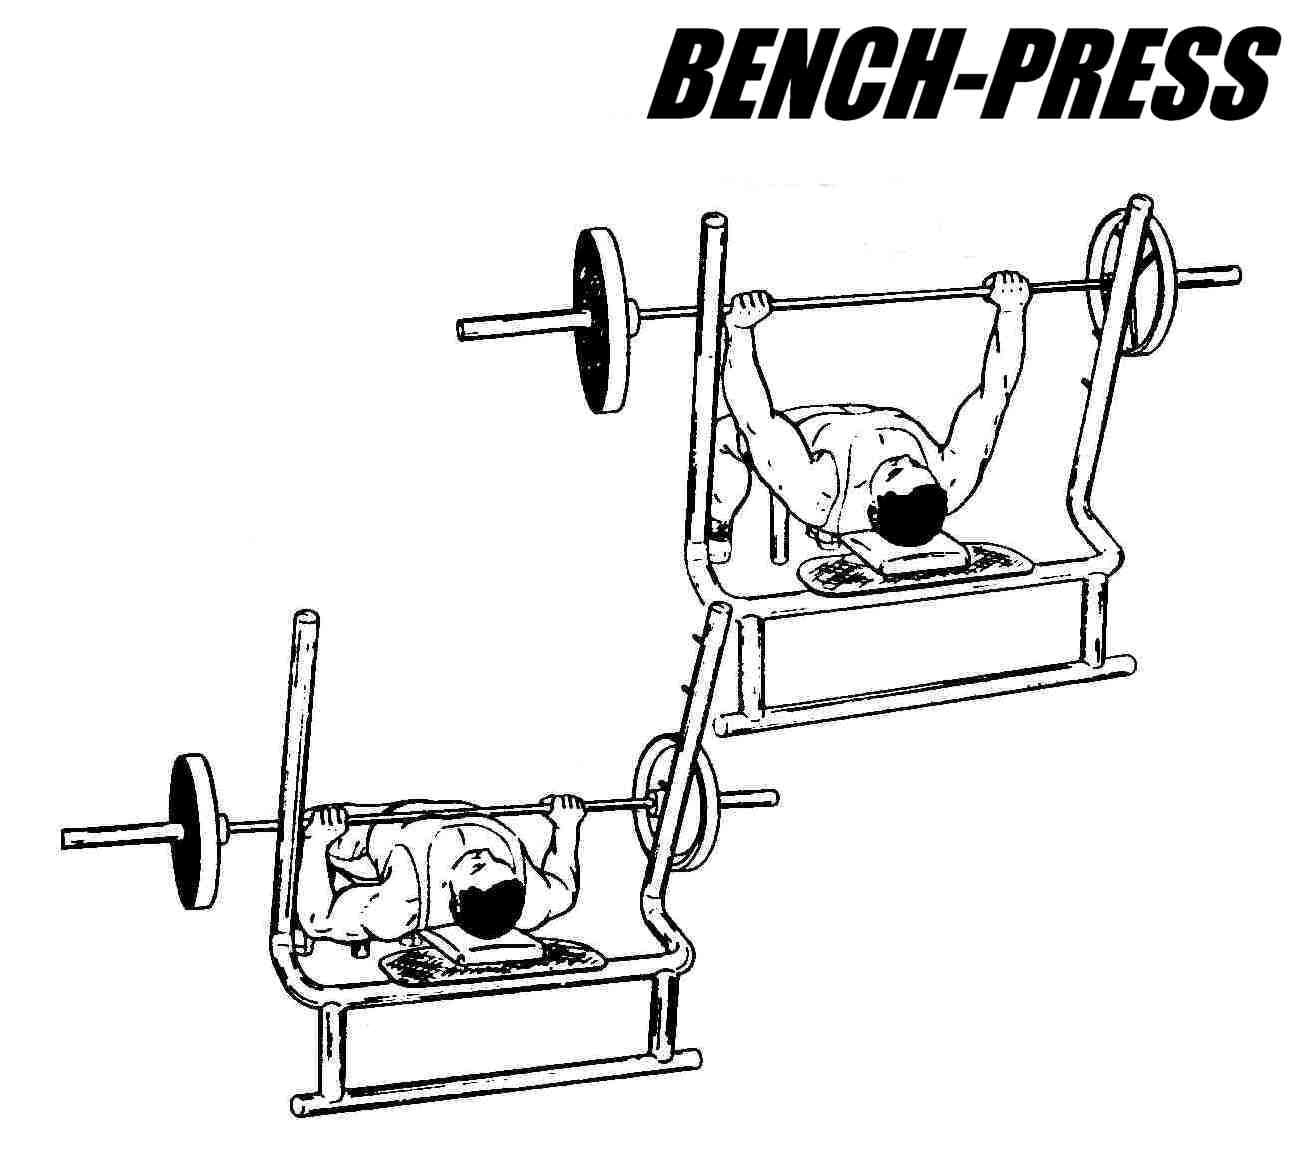 Bench Press Barbell Bench Press Exercise